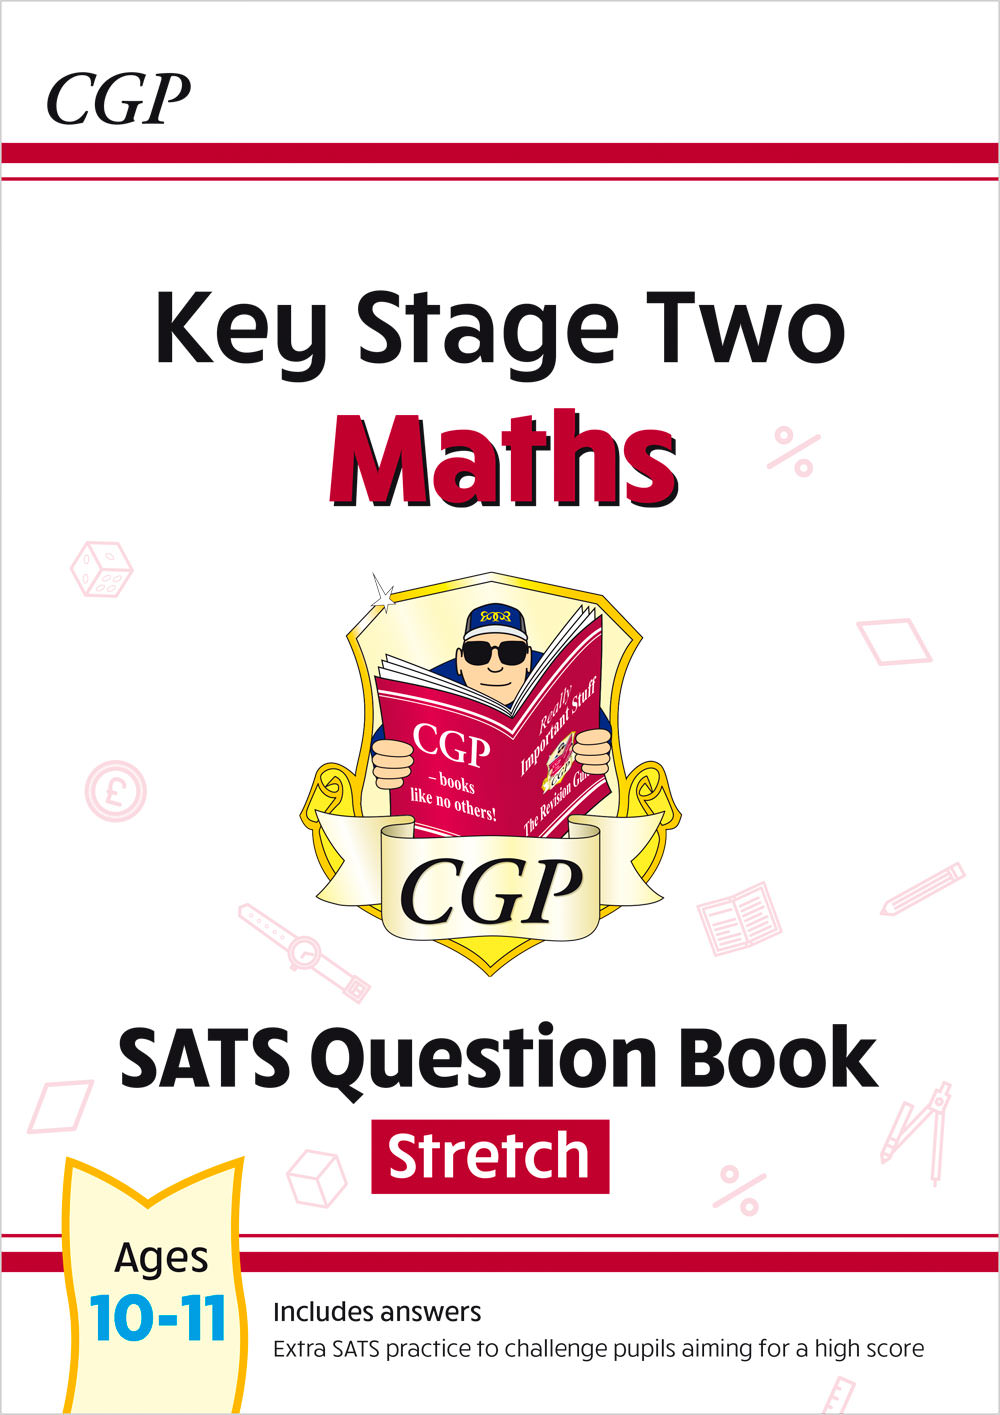 MLHW23 - New KS2 Maths SATS Question Book: Stretch - Ages 10-11 (for the 2020 tests)